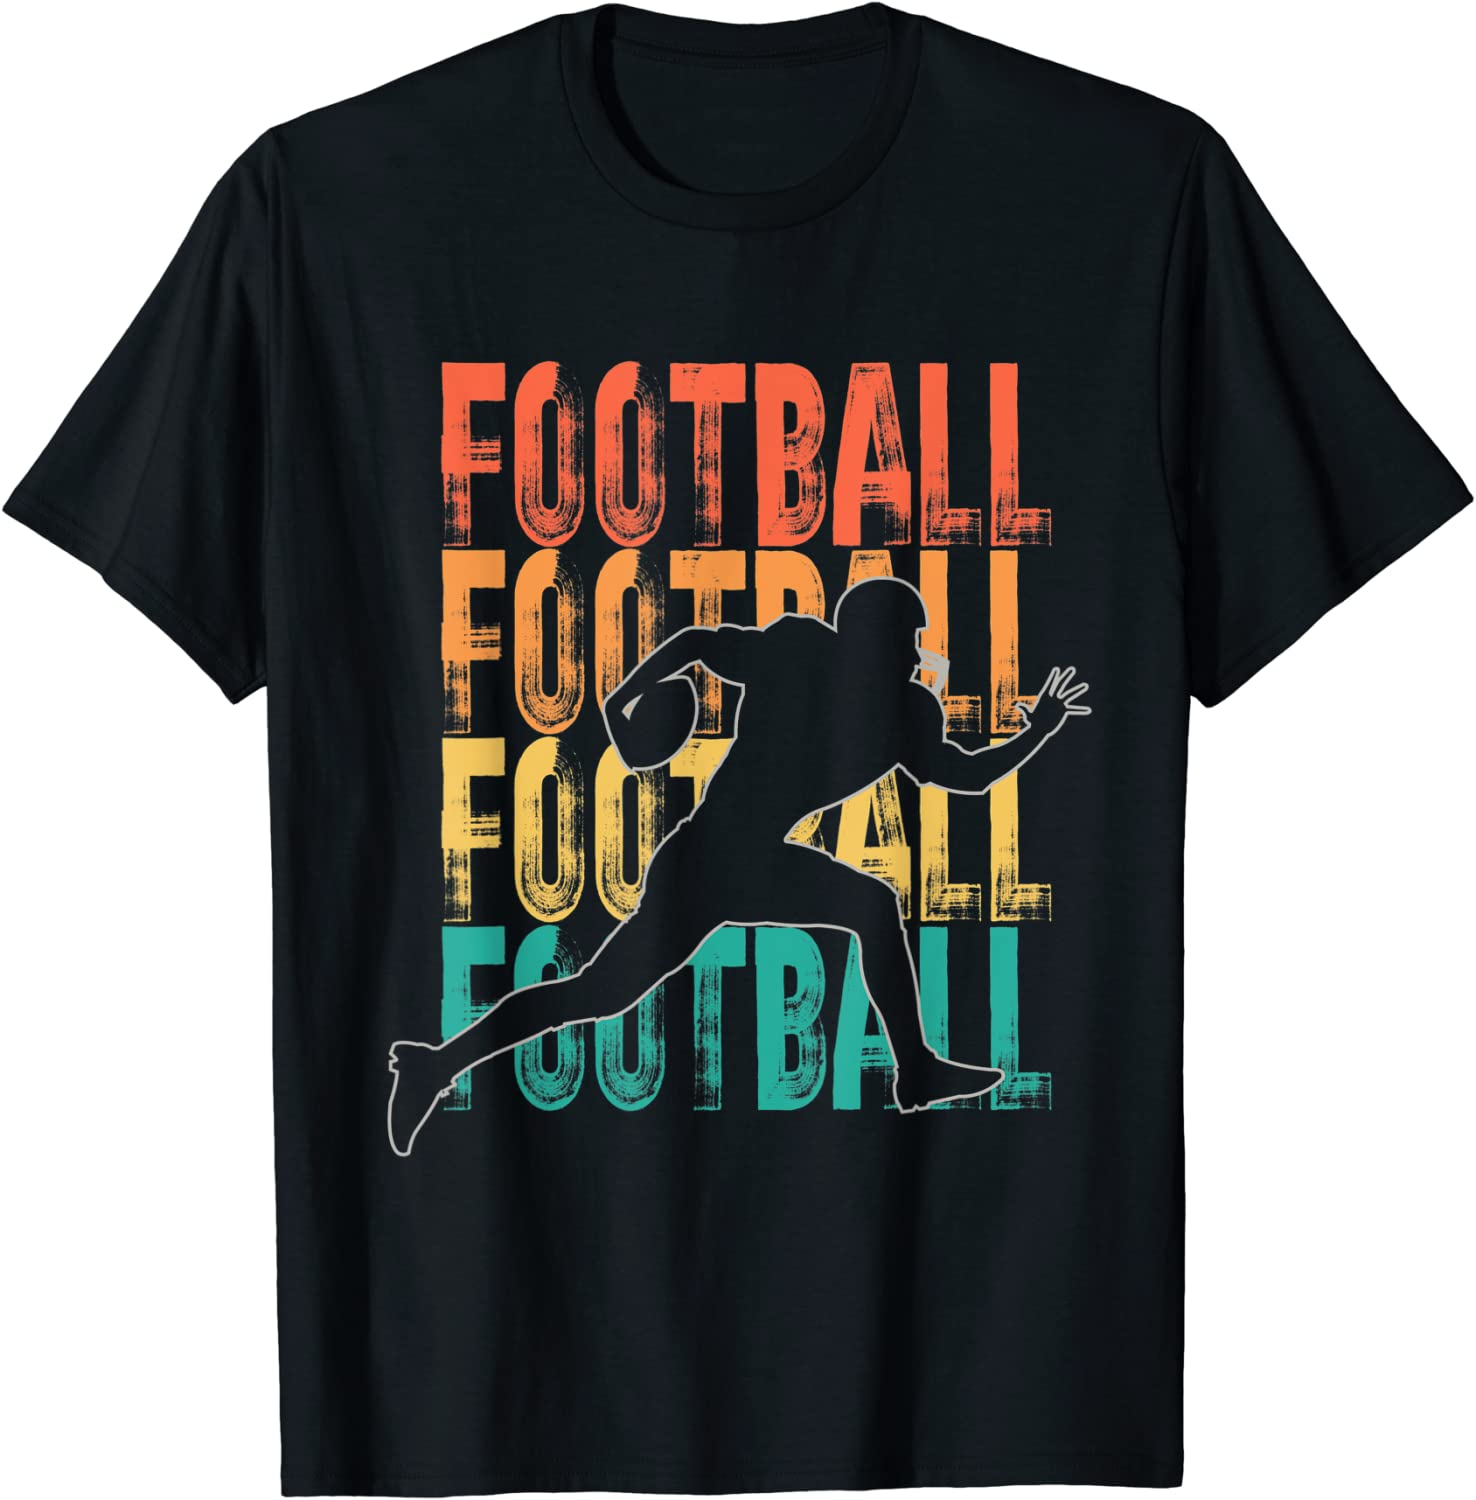 OFFicial mail order outlet Retro American Football Theme Design Footballer T-Shirt Graphic